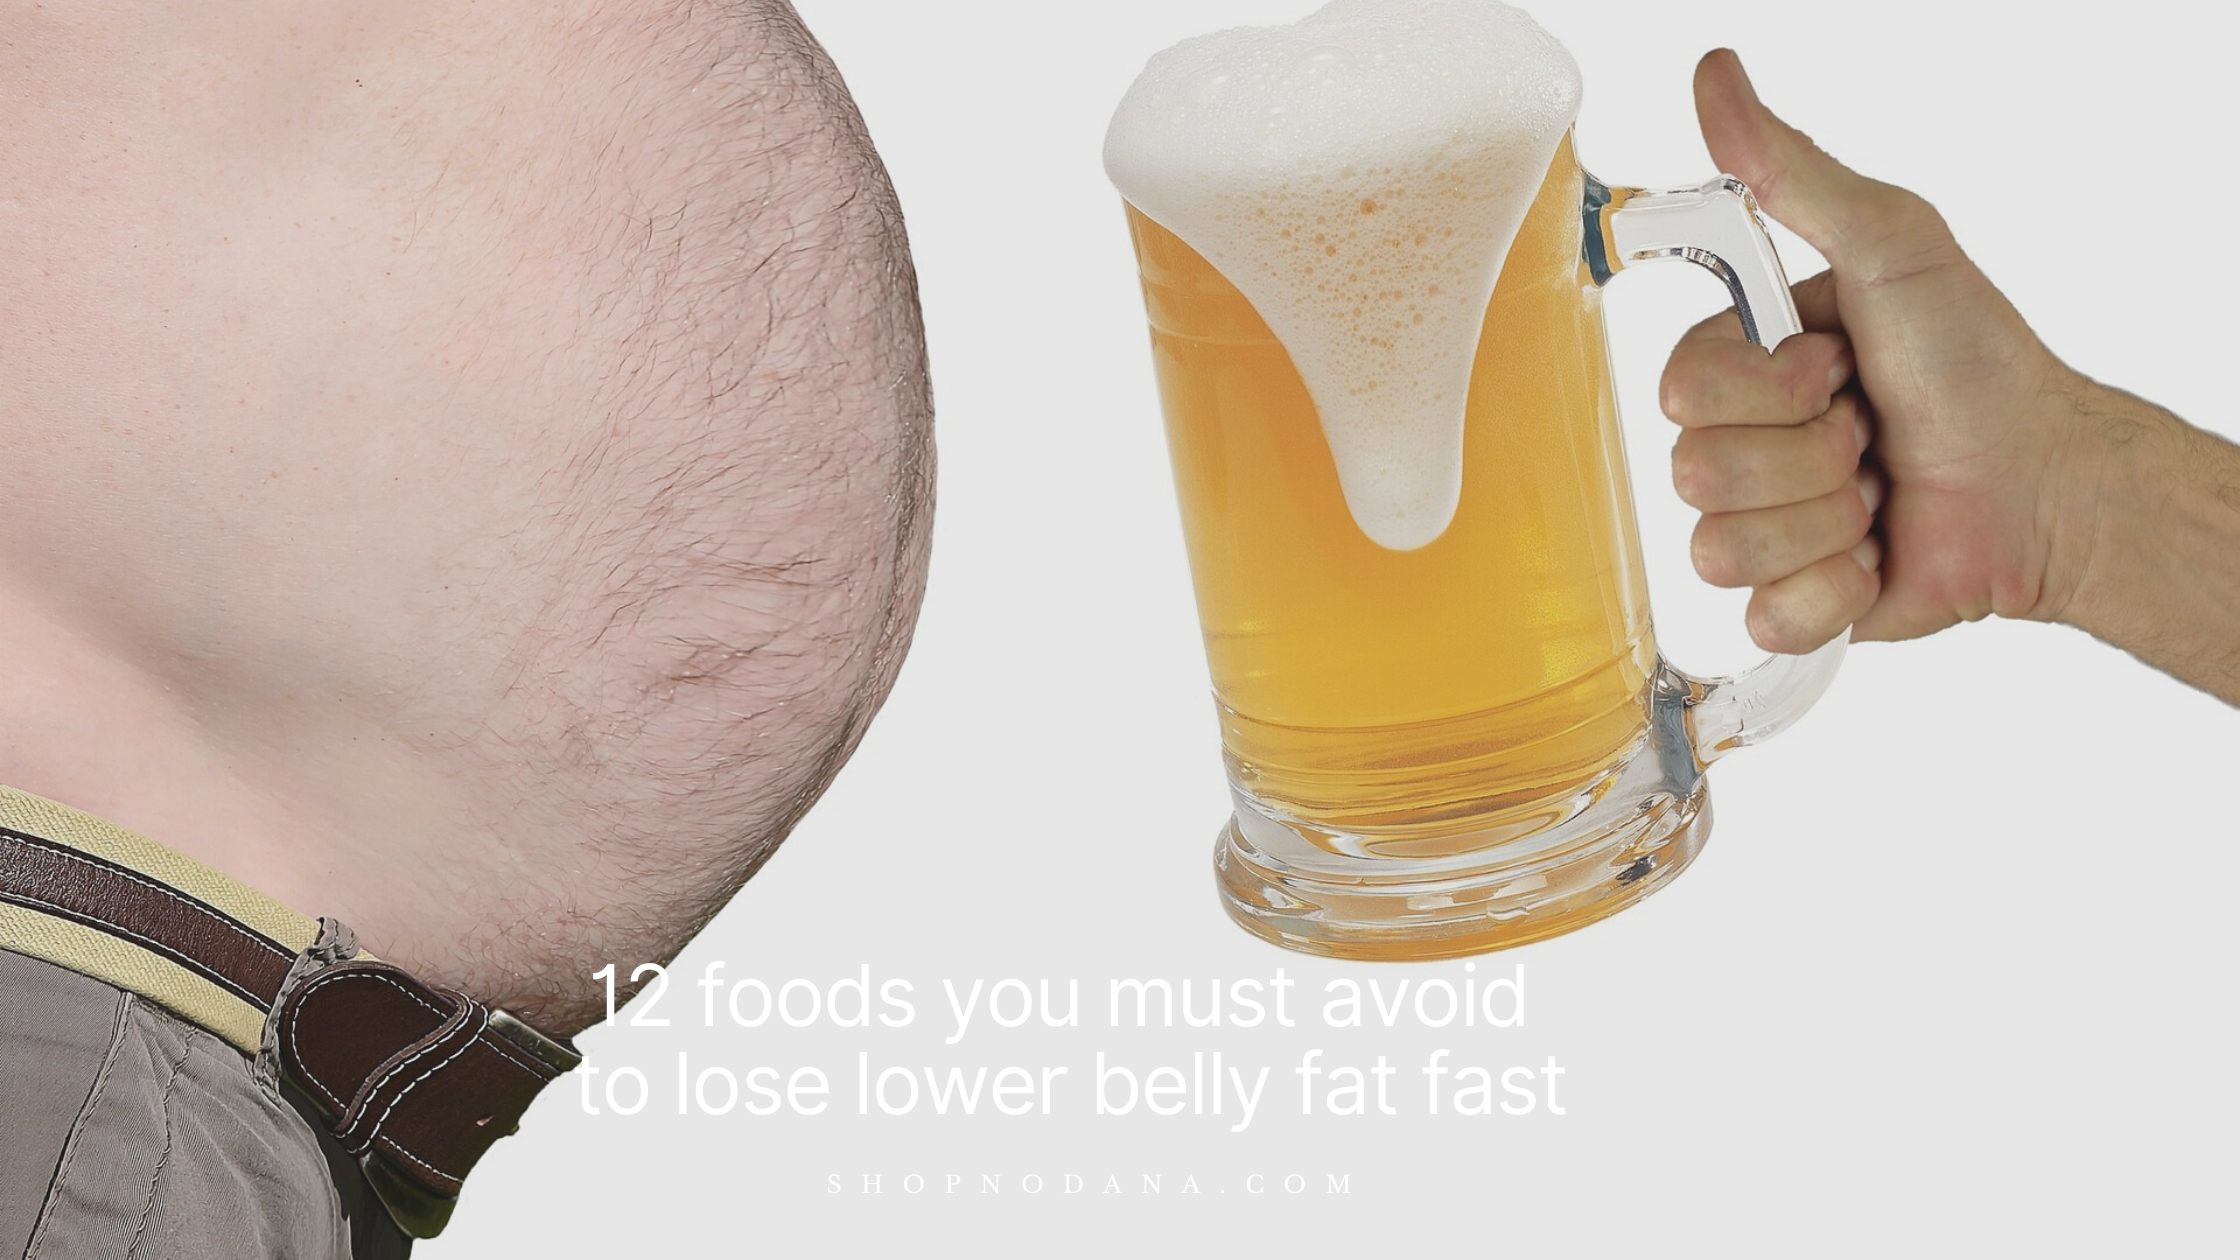 12 foods you must avoid to lose lower belly fat fast